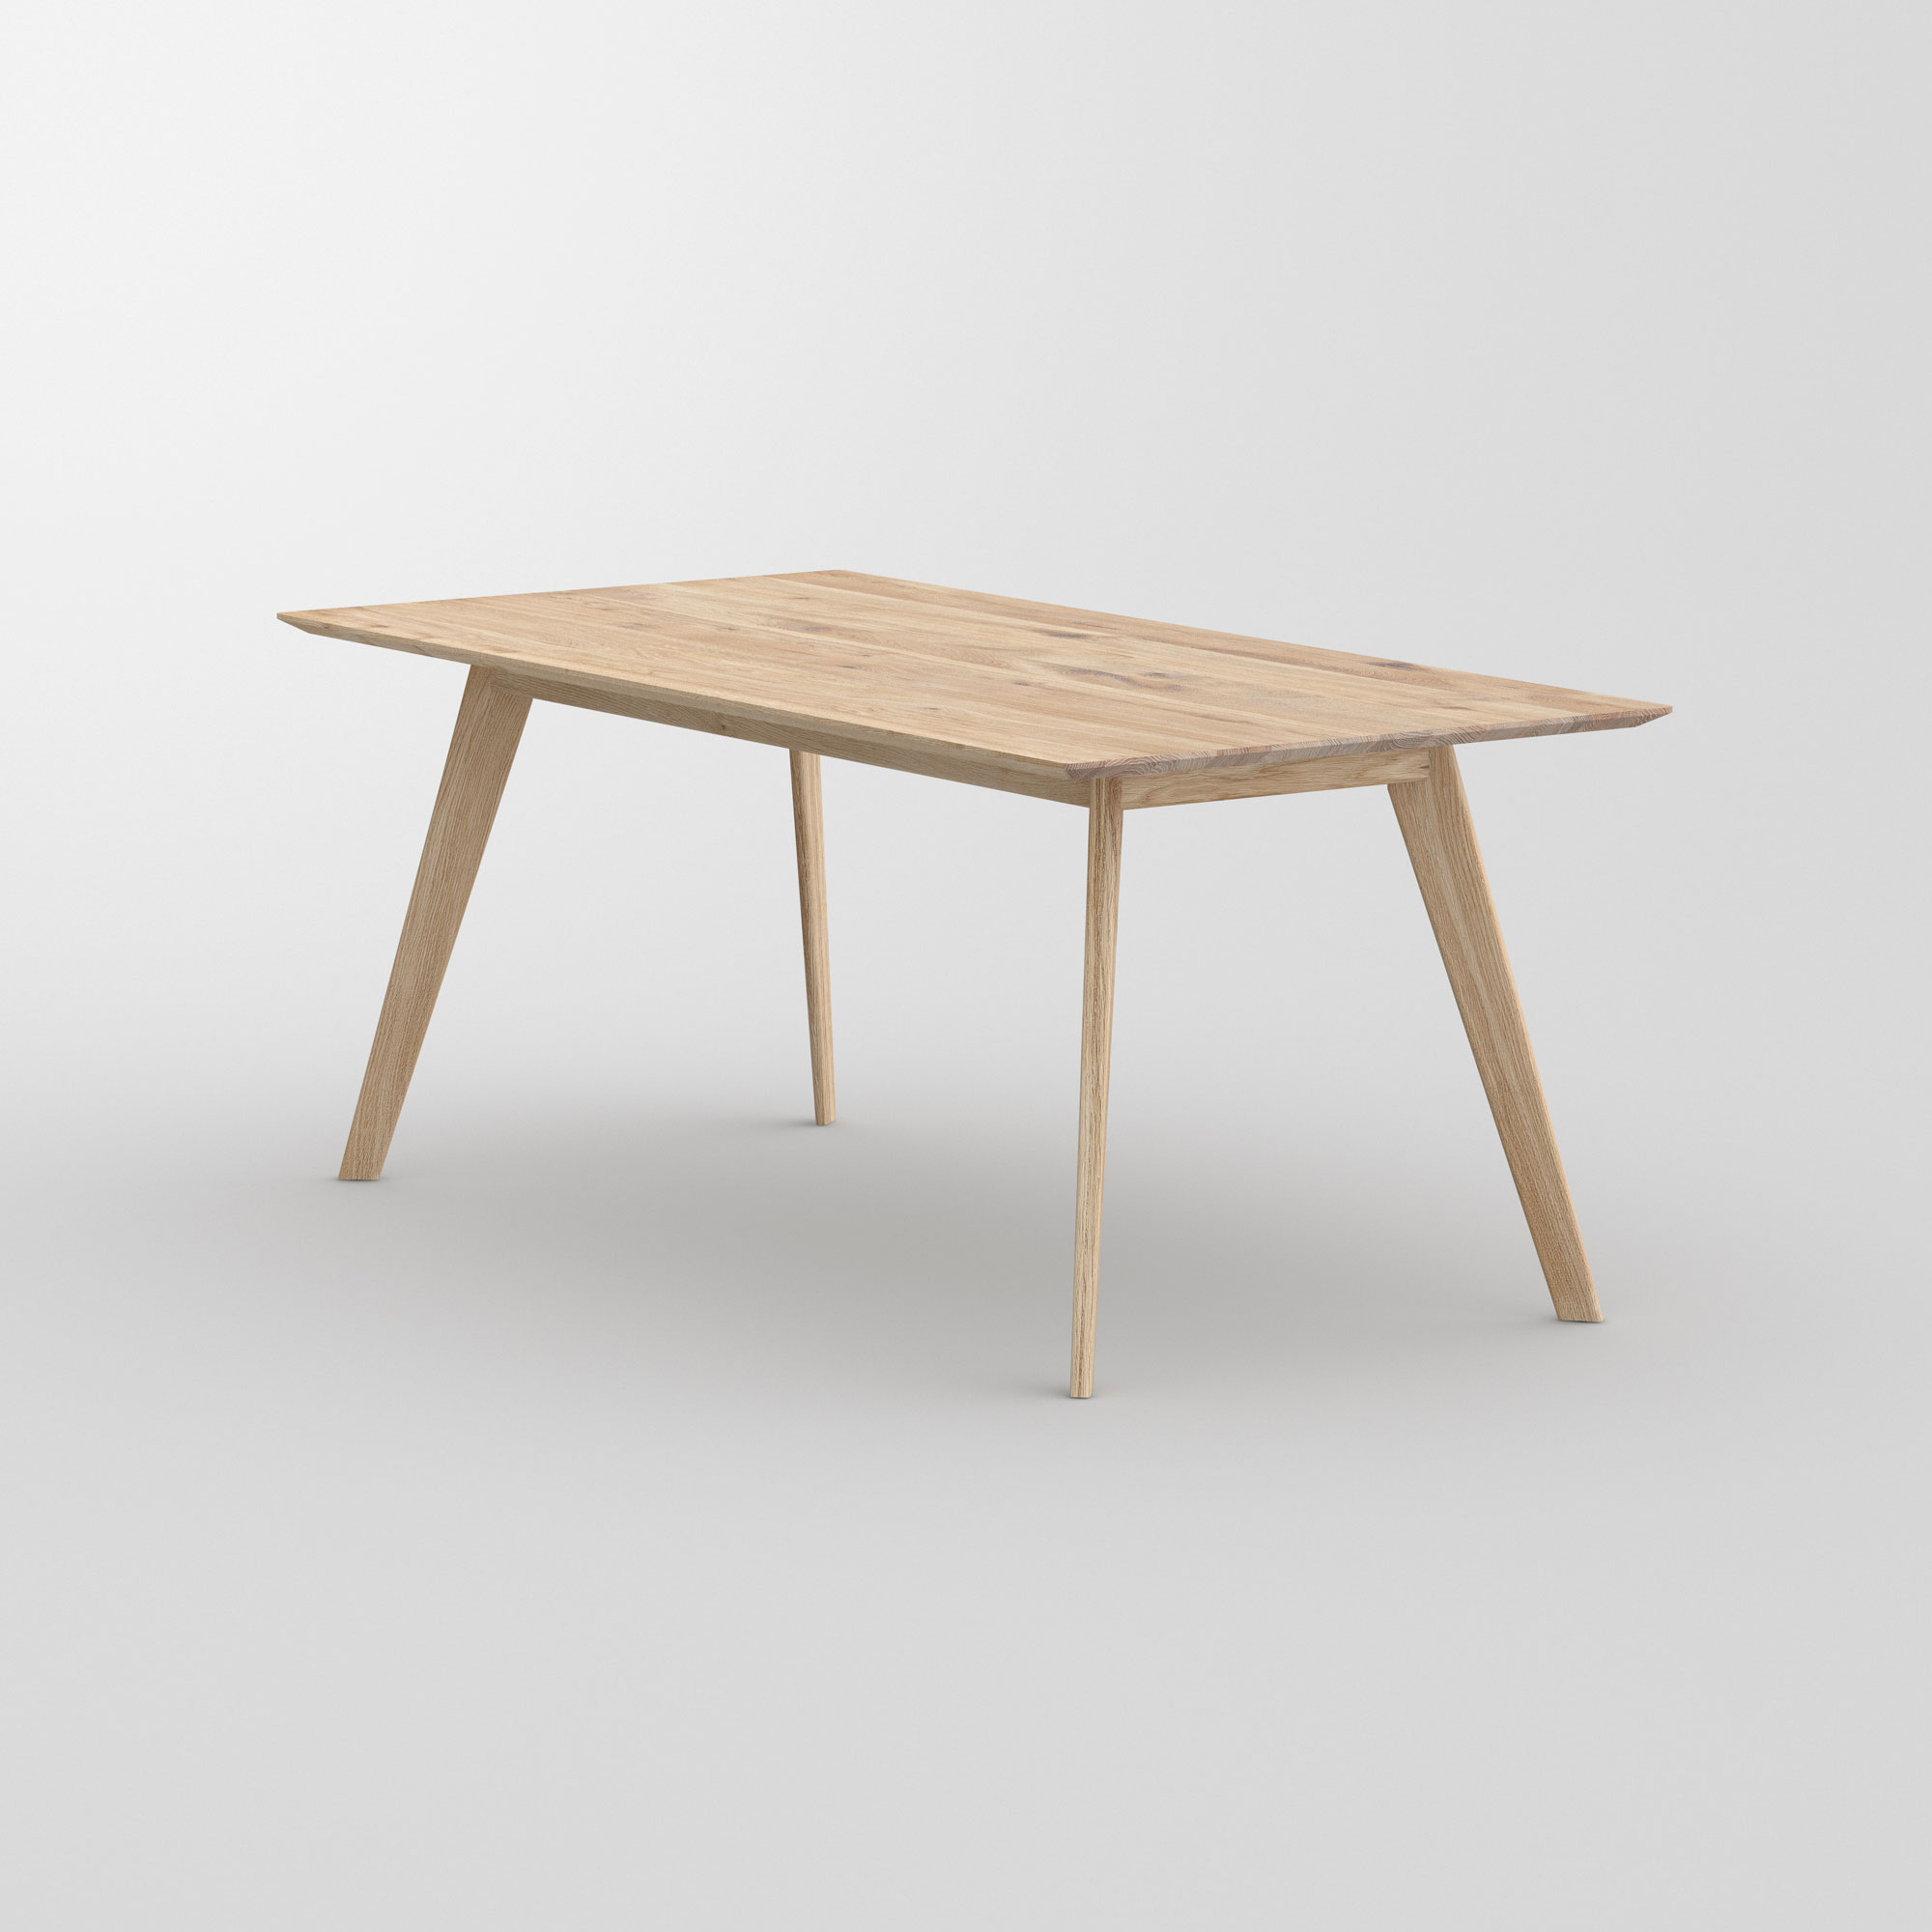 Soft Solid Wood Table CITIUS SOFT cam3 custom made in solid wood by vitamin design